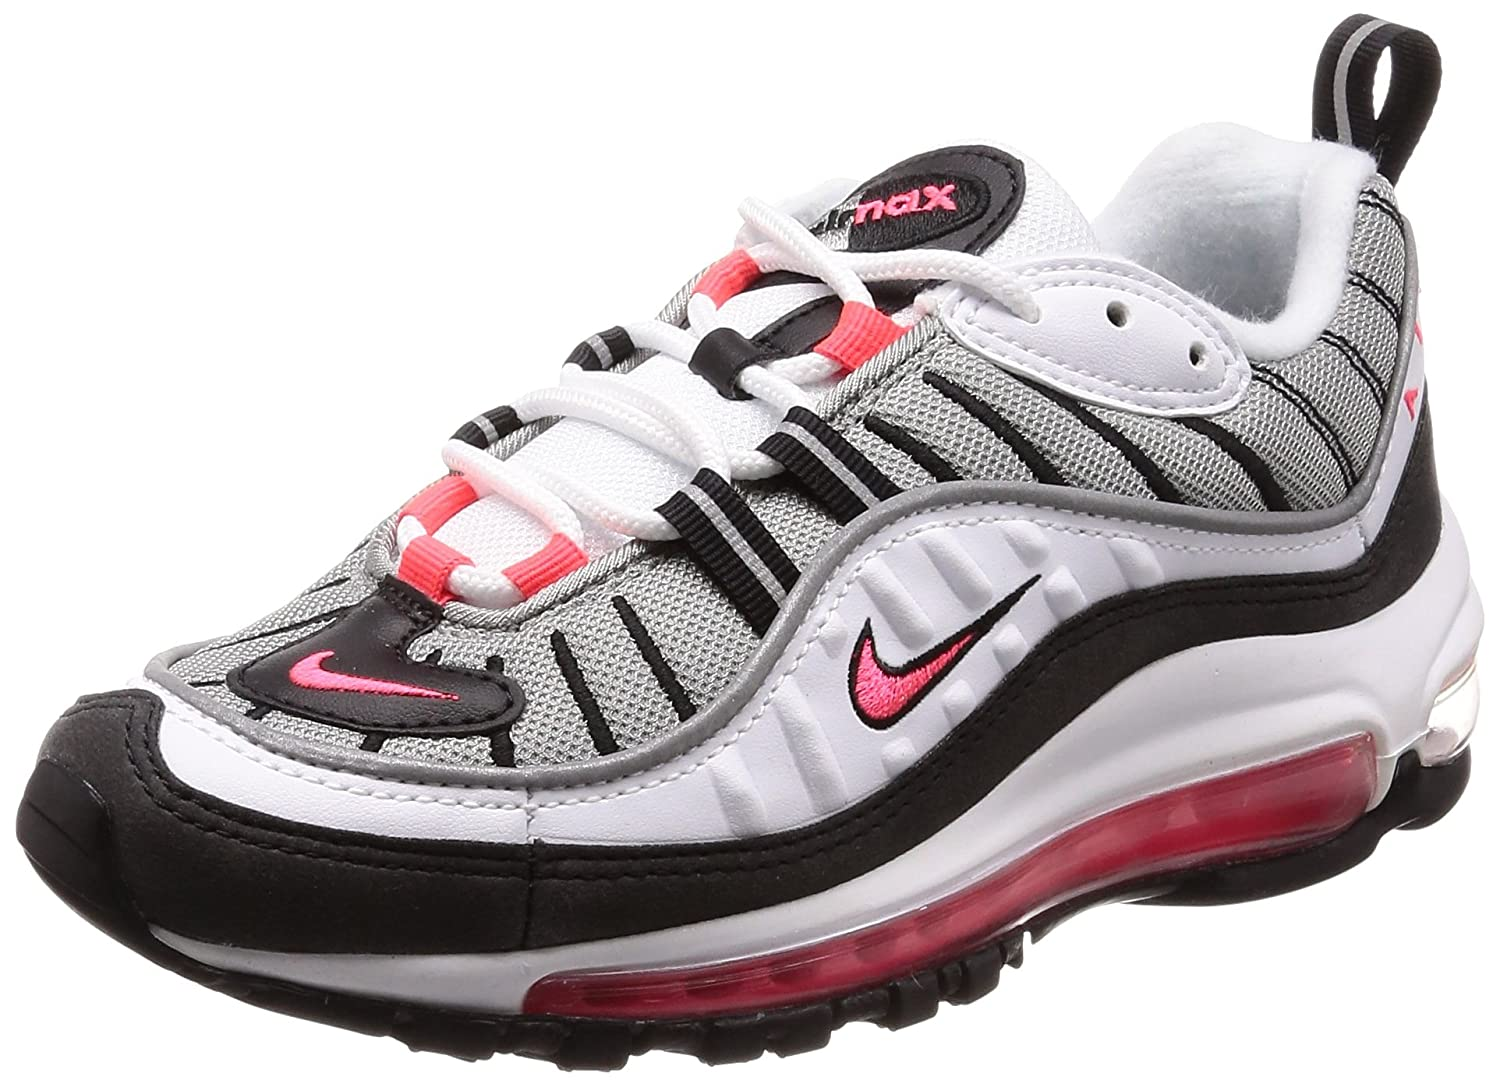 White, solar red-dust Nike W AIR MAX 98 'Solar RED' - AH6799-104